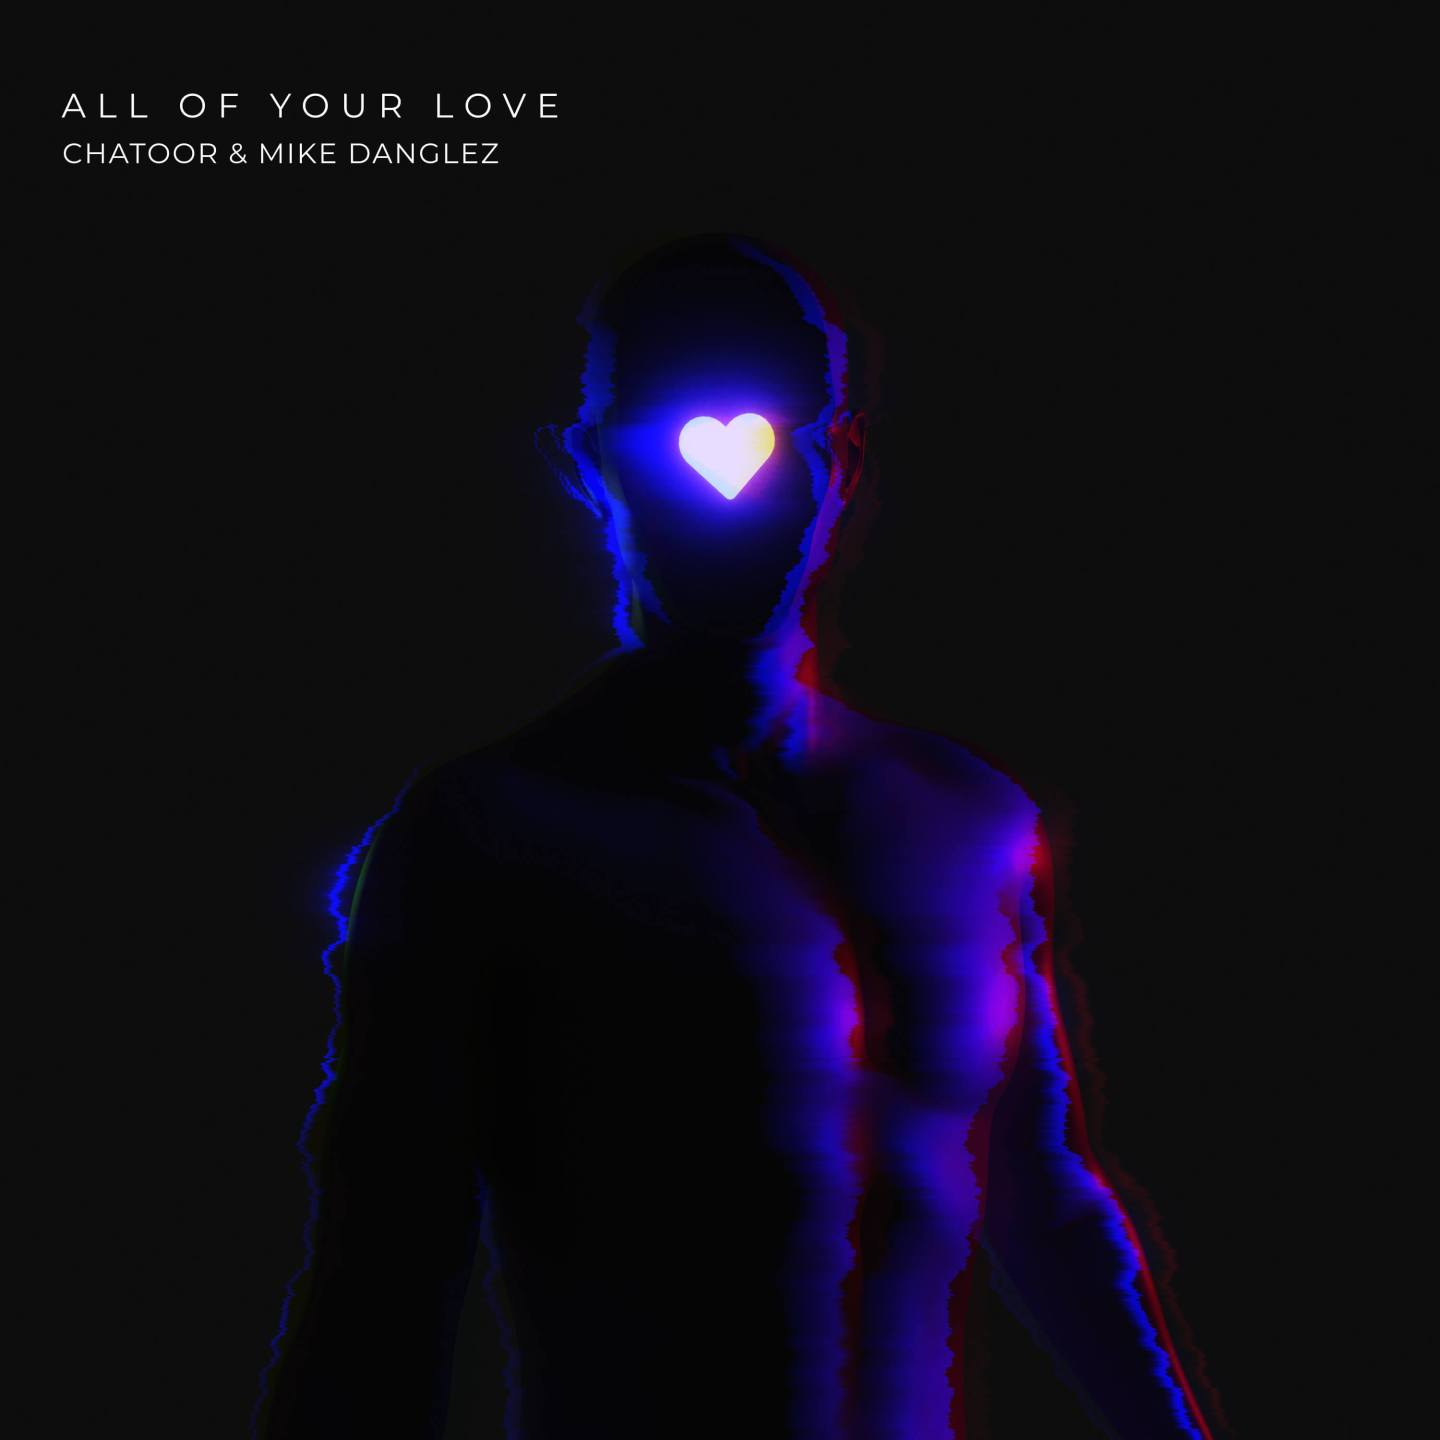 Mike Danglez & Chatoor 'All Of Your Love' Artwork